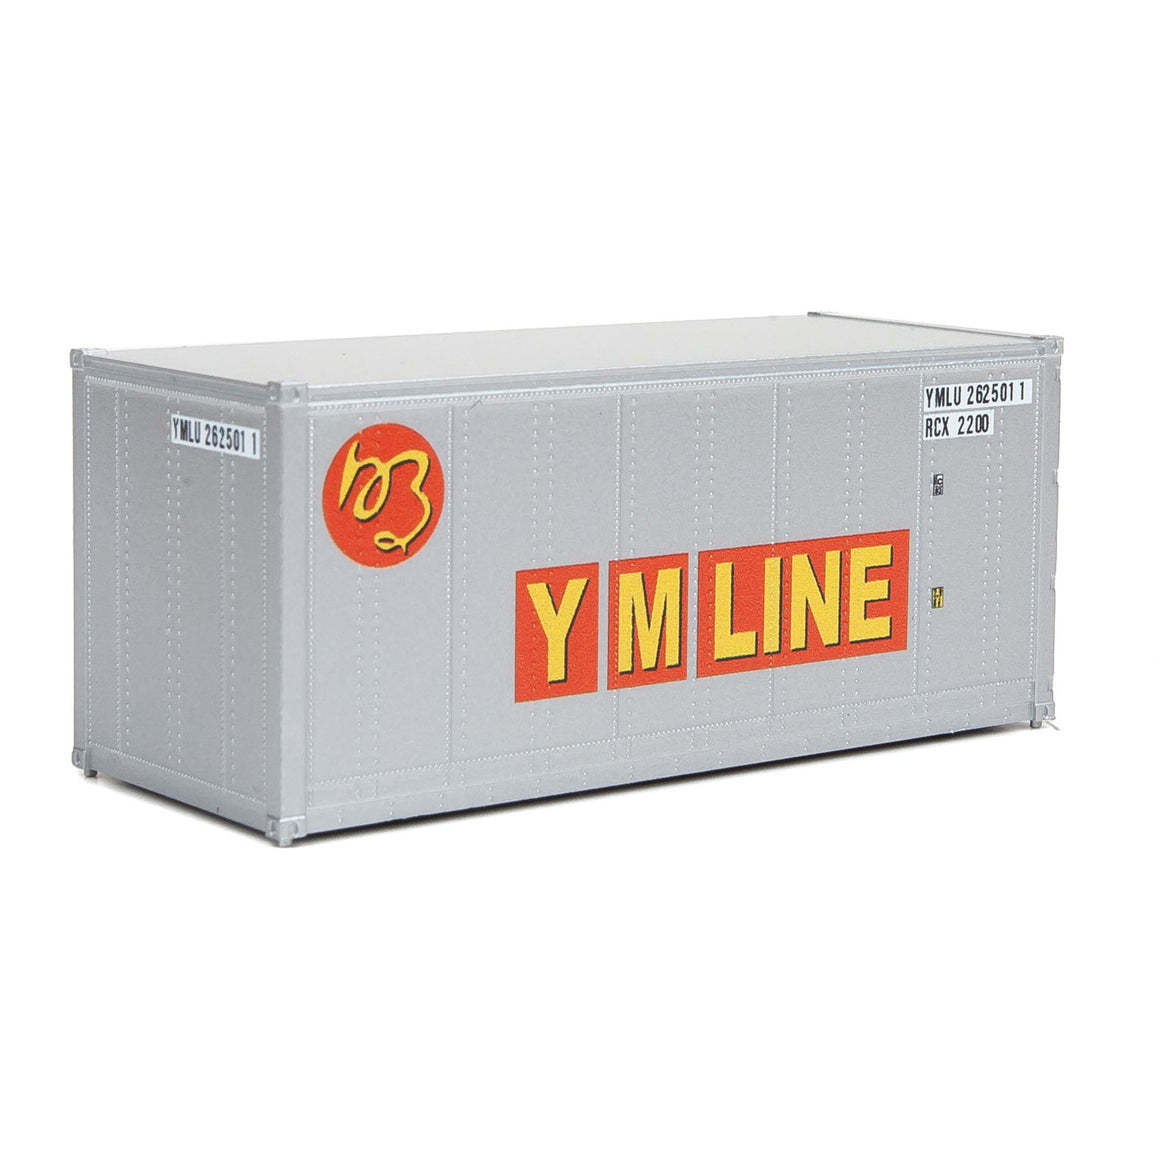 HO Scale: 20' Smooth-side Container - YM Line